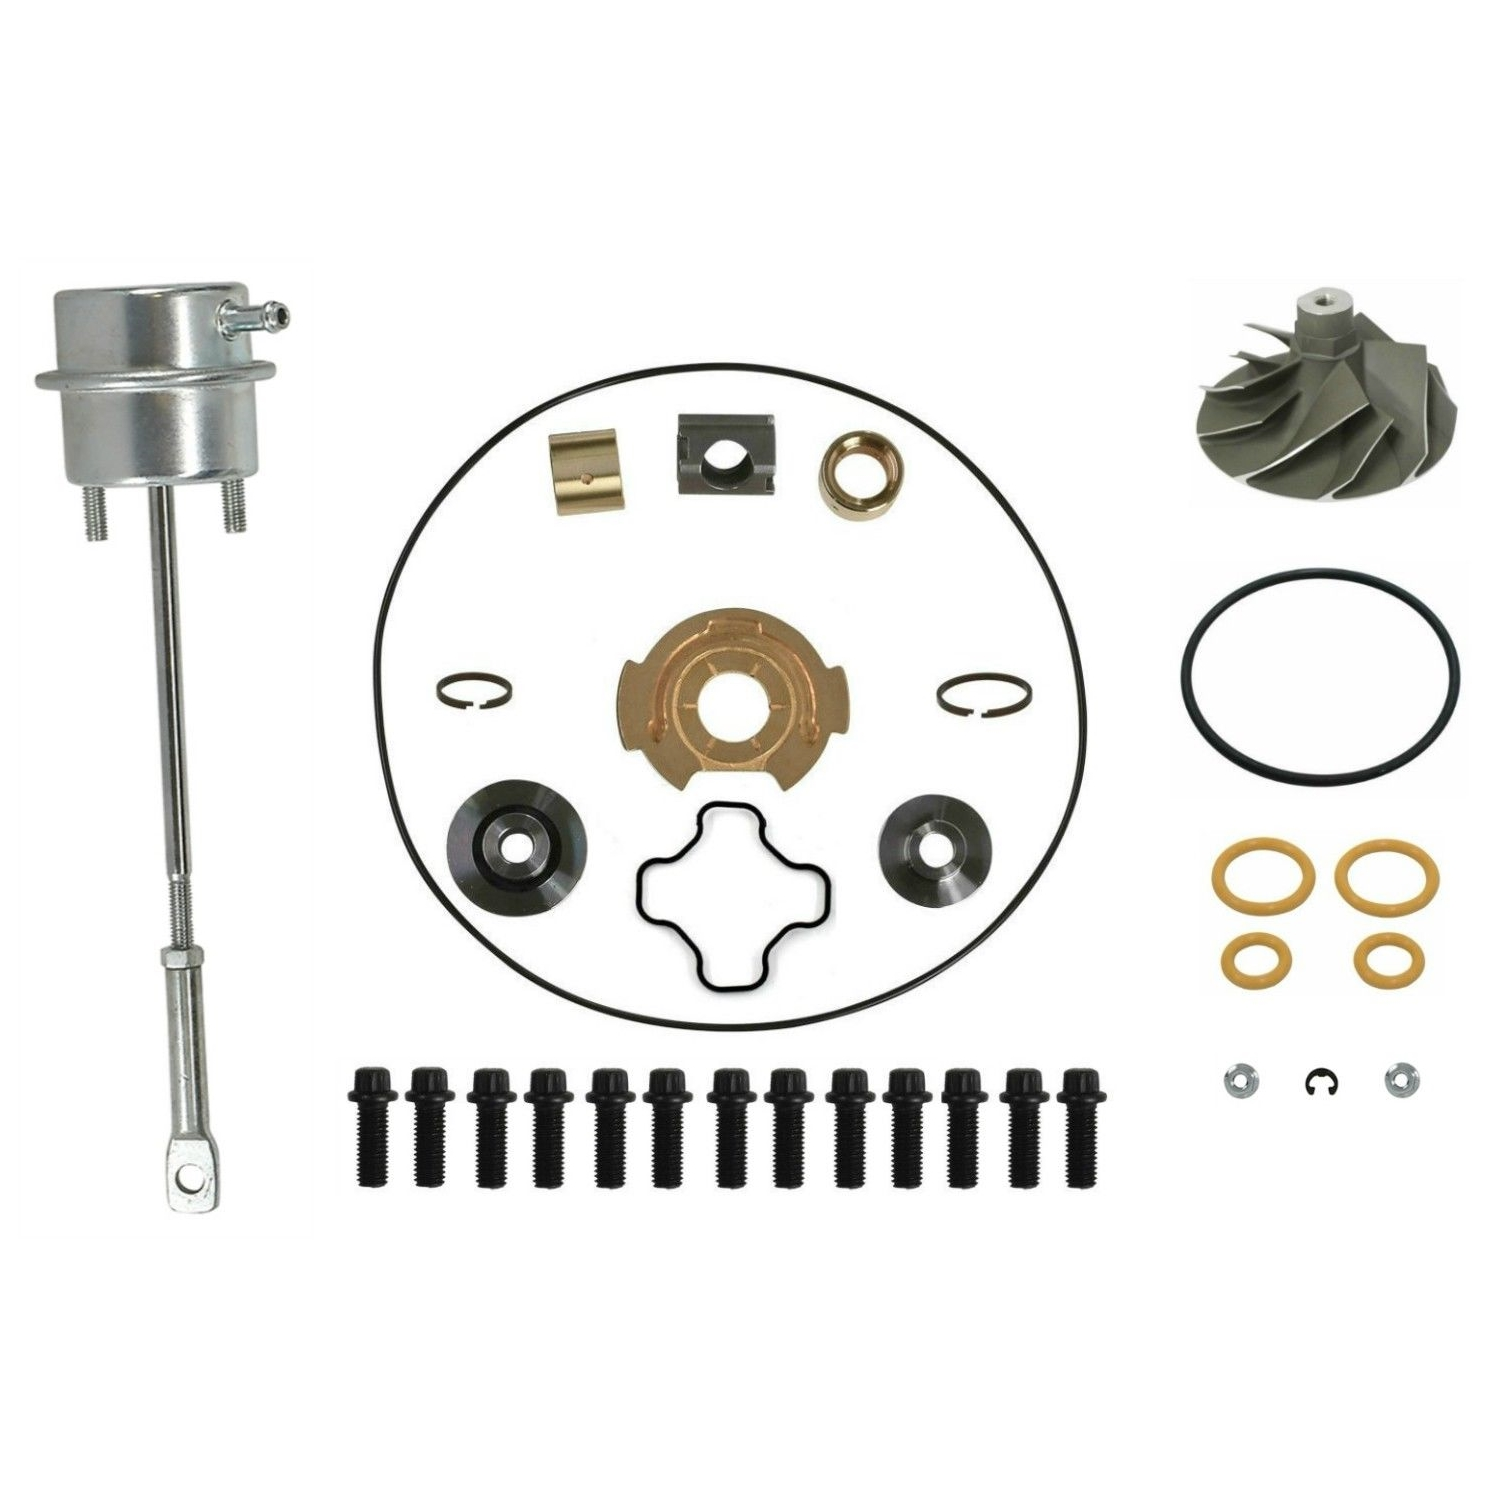 GTP38 Turbo Rebuild Kit Cast Compressor Wheel Wastegate Actuator For 99-03 7.3L Ford Powerstroke Diesel